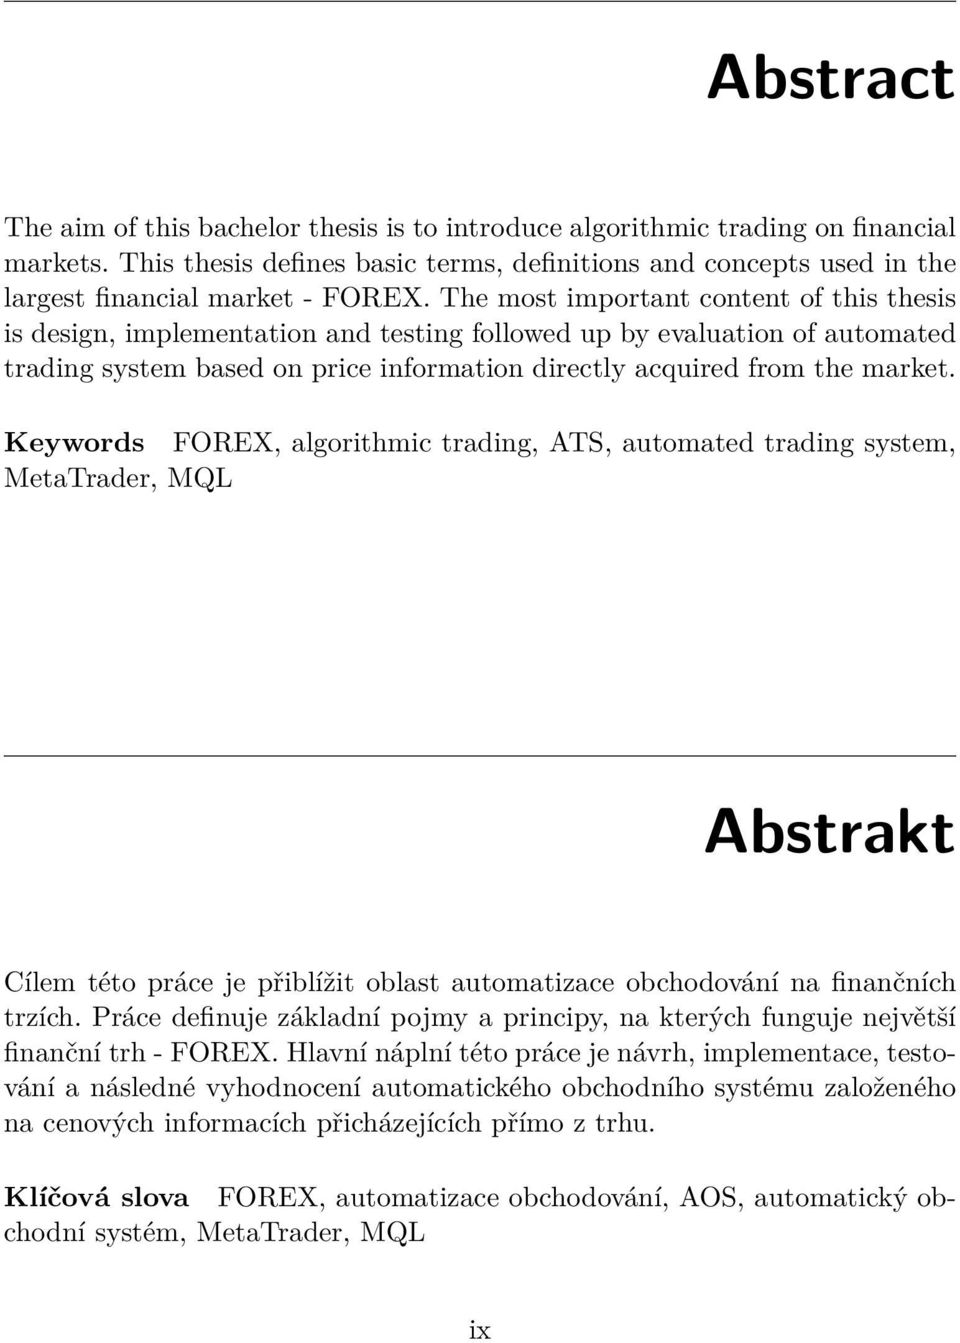 The most important content of this thesis is design, implementation and testing followed up by evaluation of automated trading system based on price information directly acquired from the market.